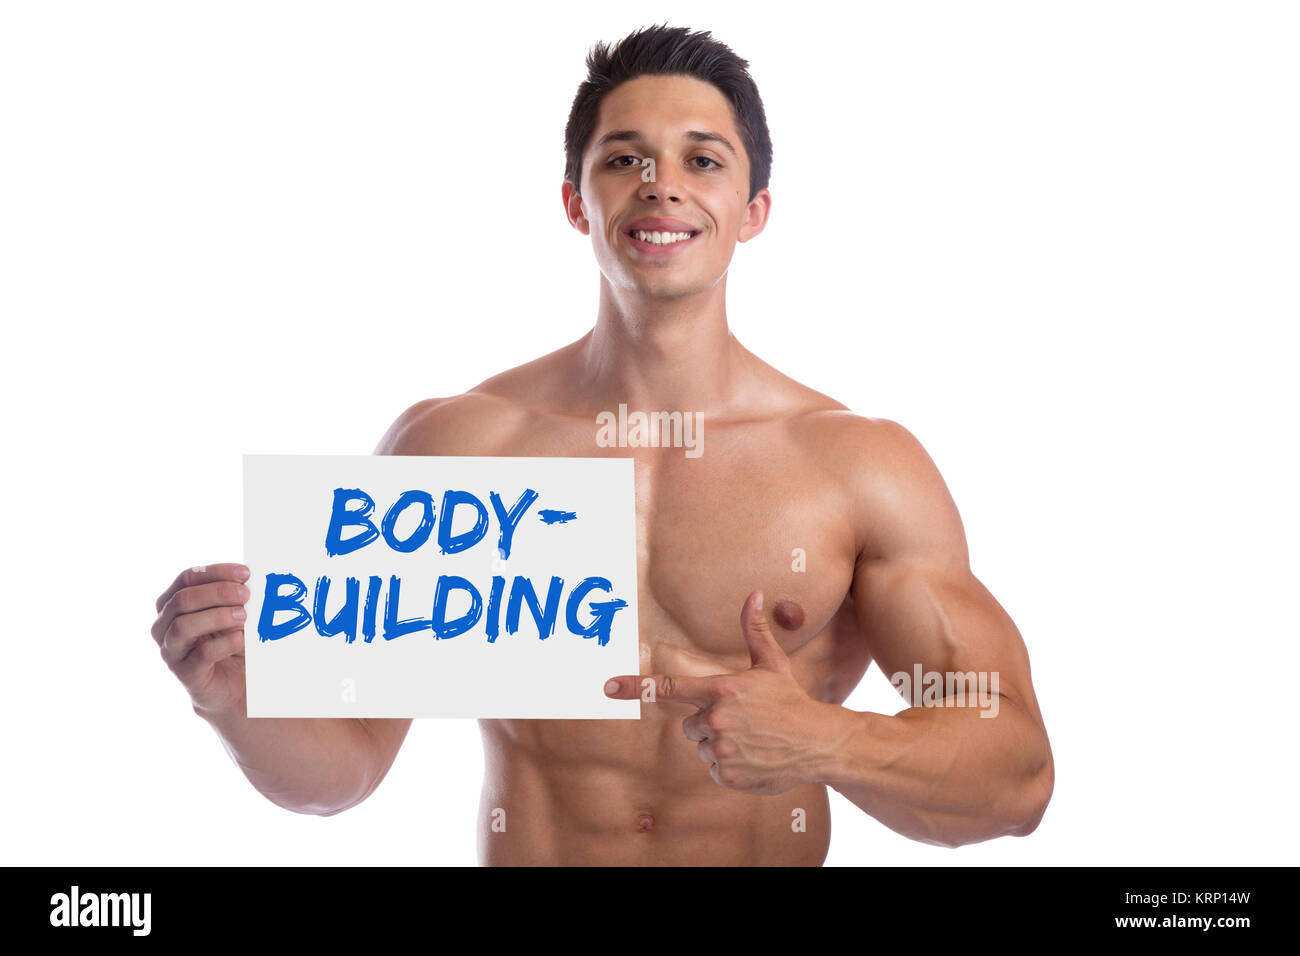 Bodybuilder bodybuilding bouclier muscles musculation homme strong muscular young cut Photo Stock